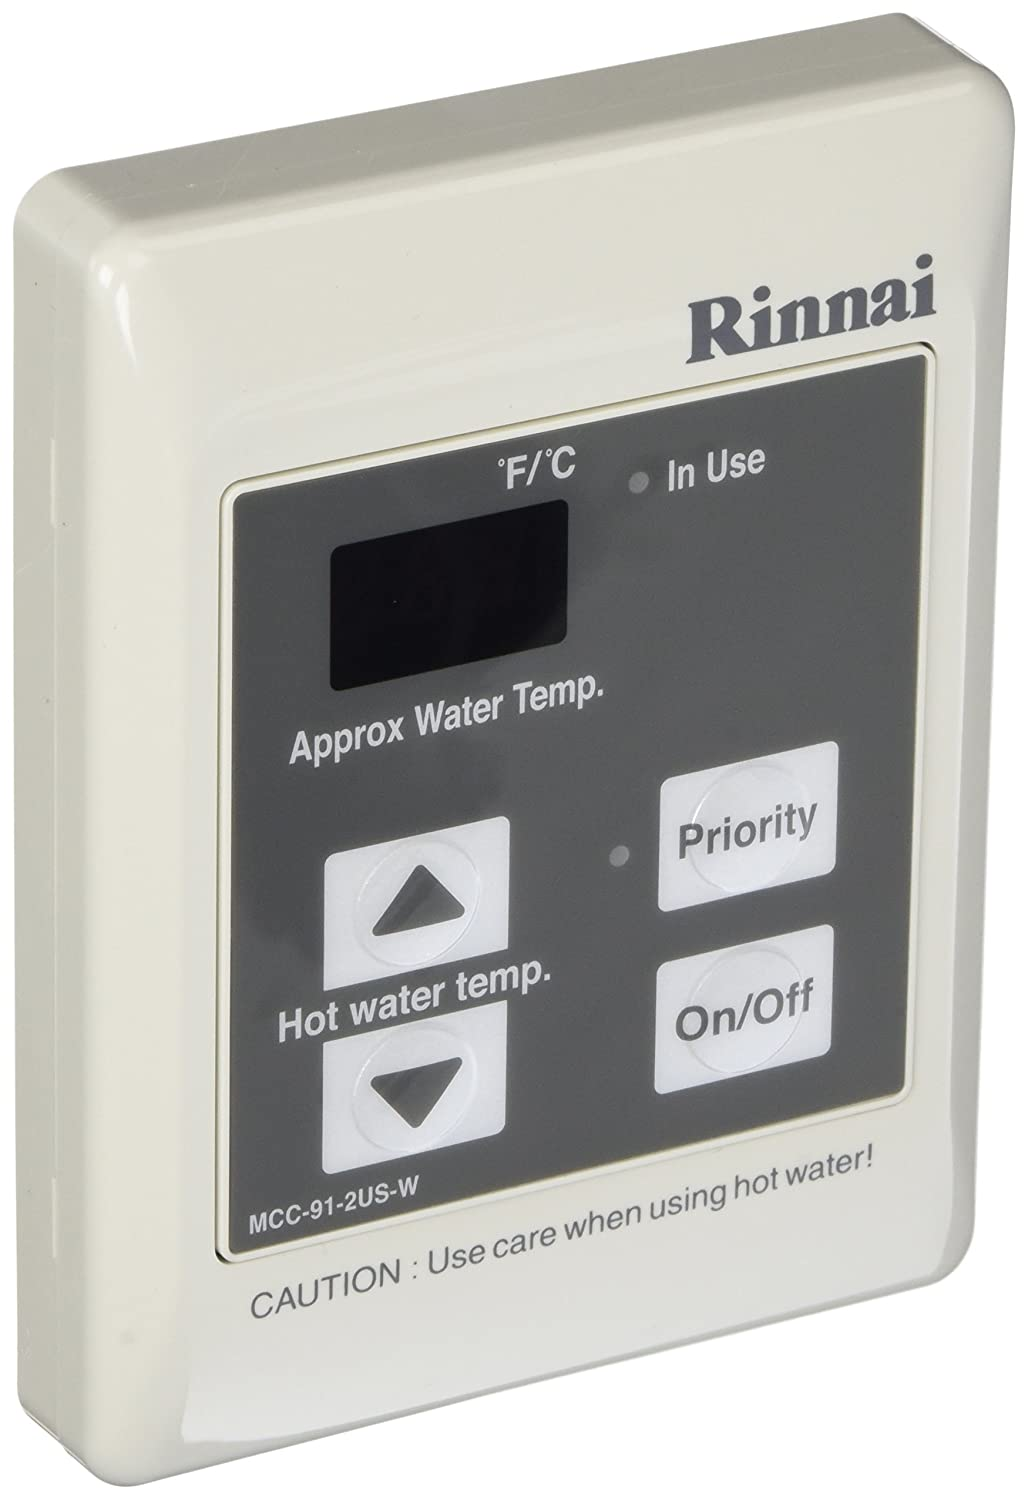 RINNAI MCC-91-2W COMMERCIAL CONTROLLER FOR LS SERIES >180 DEG F (OLD NUMBER MCC-91-1W) MC266620